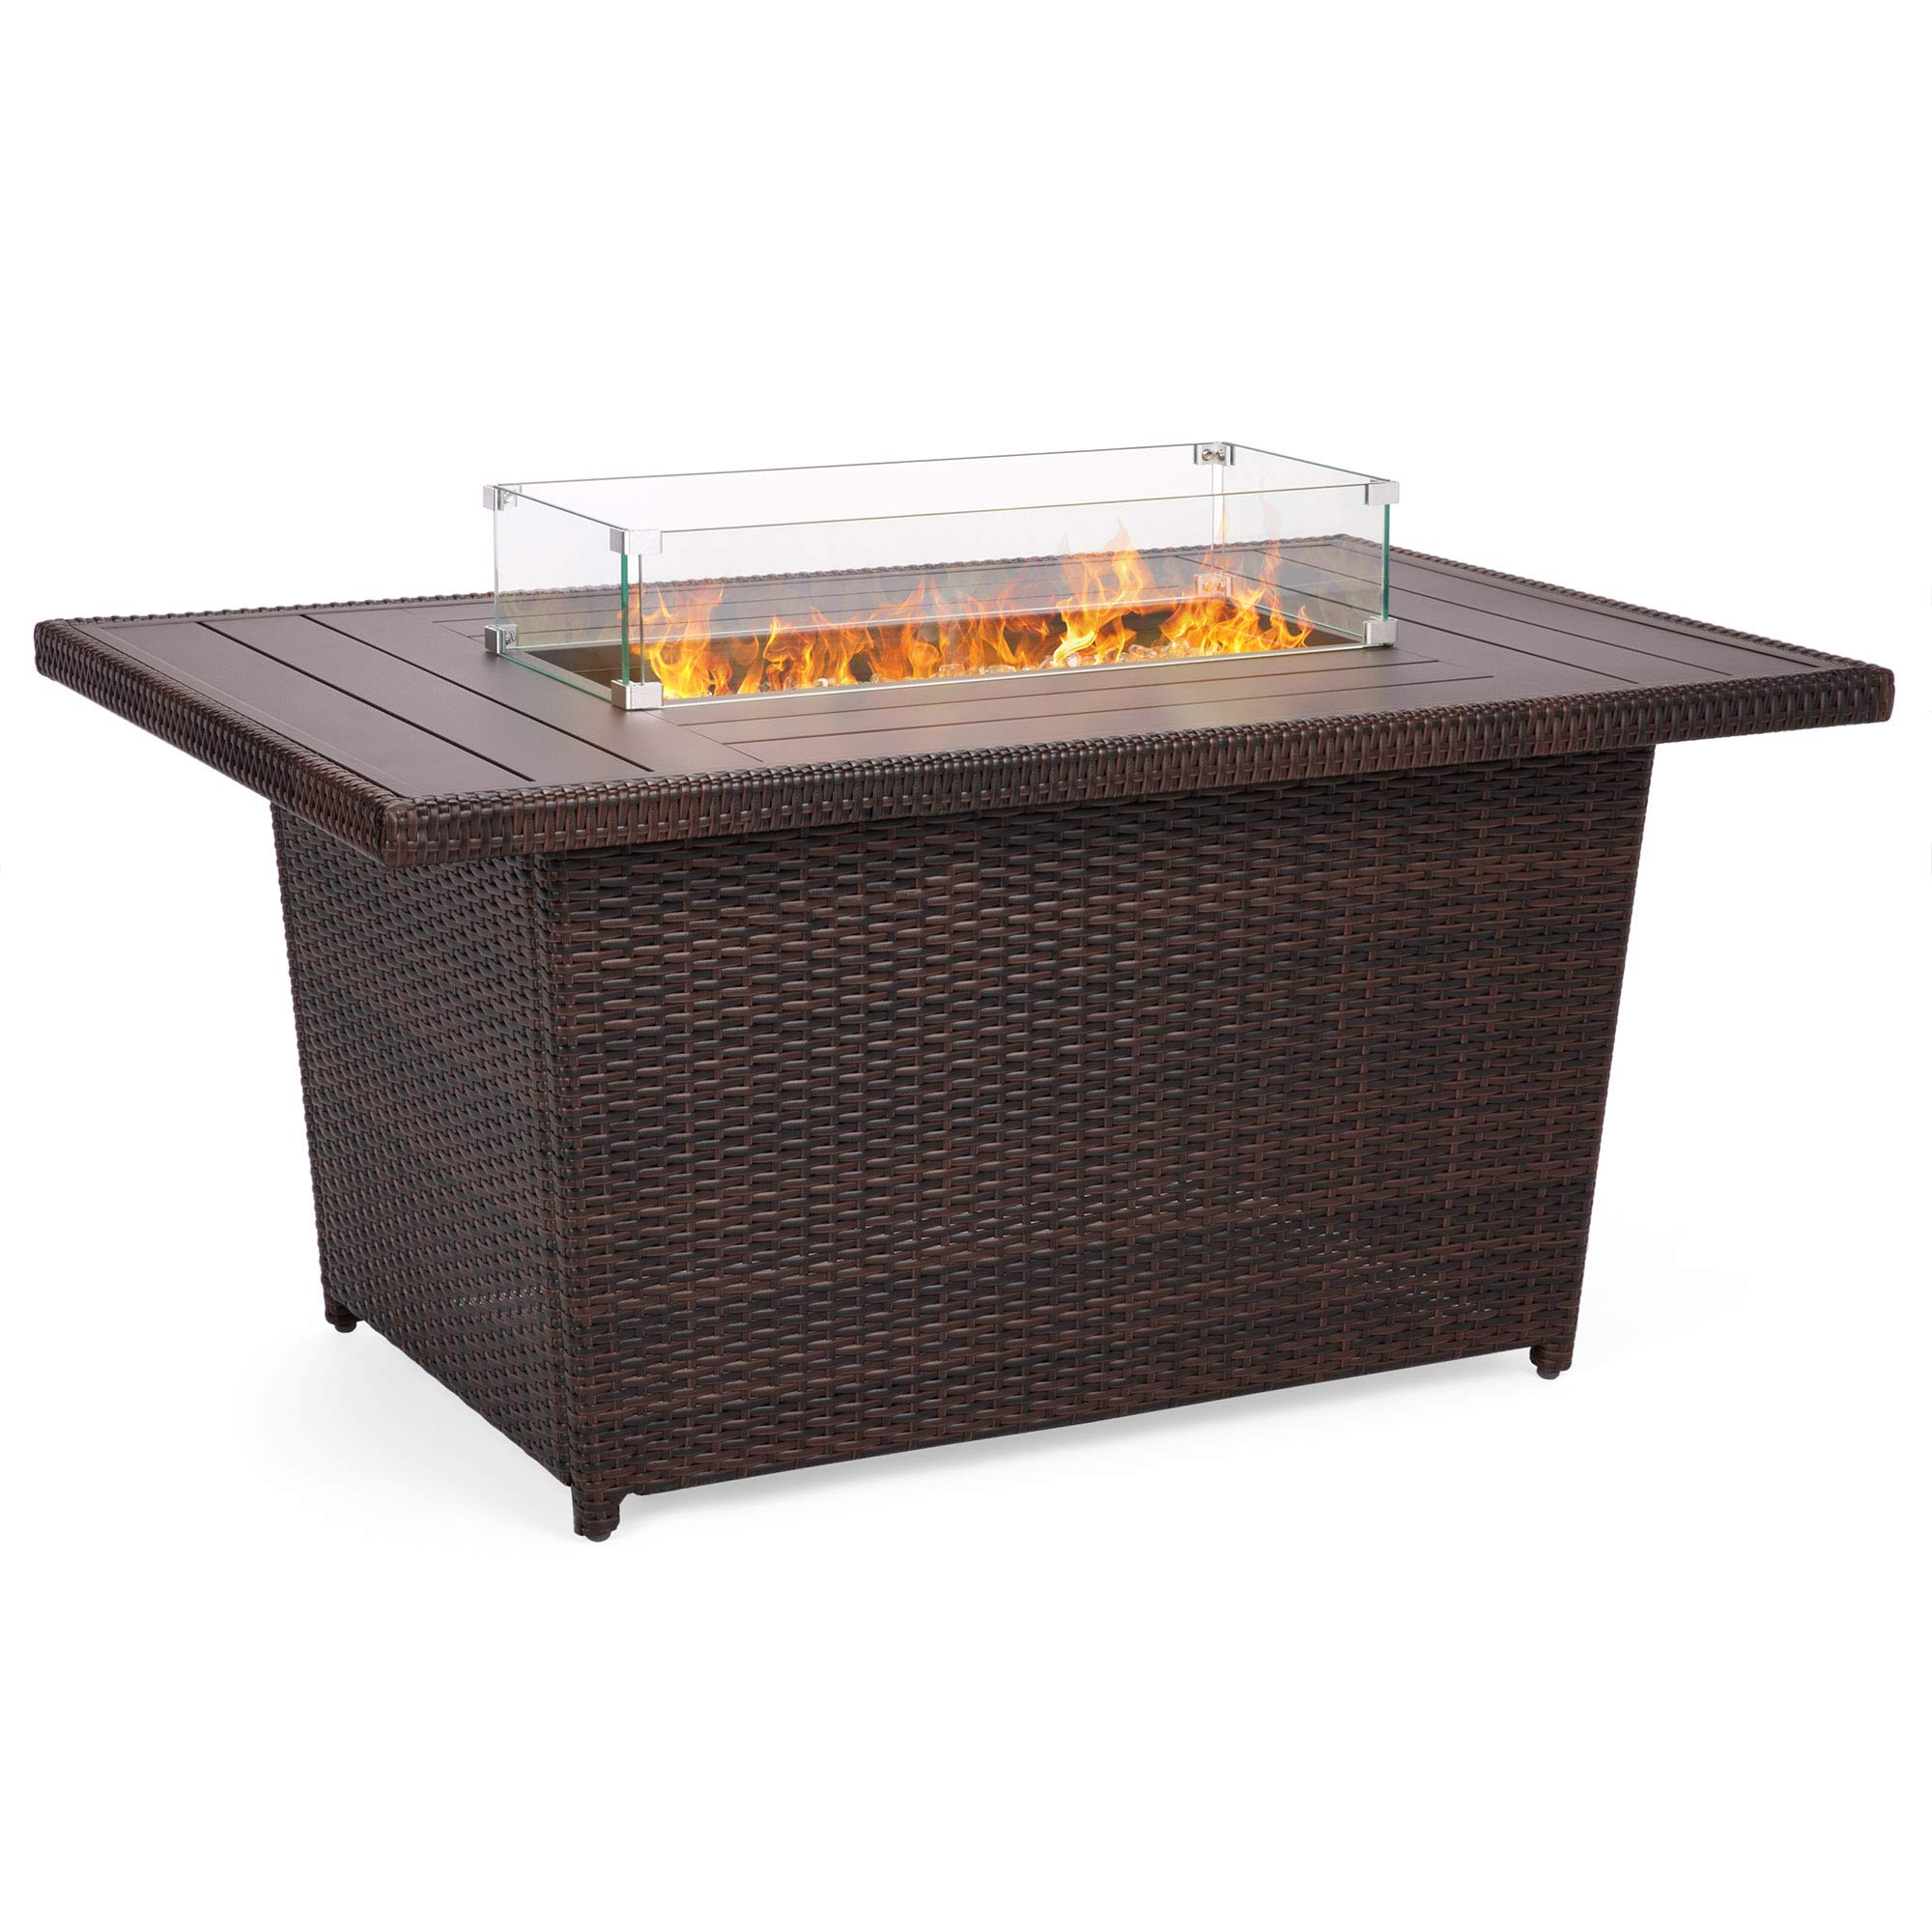 Best Choice Products 52in Outdoor Wicker Propane Fire Pit Table 50,000 BTU w/Glass Wind Guard, Tank Holder, Cover-Brown by Best Choice Products